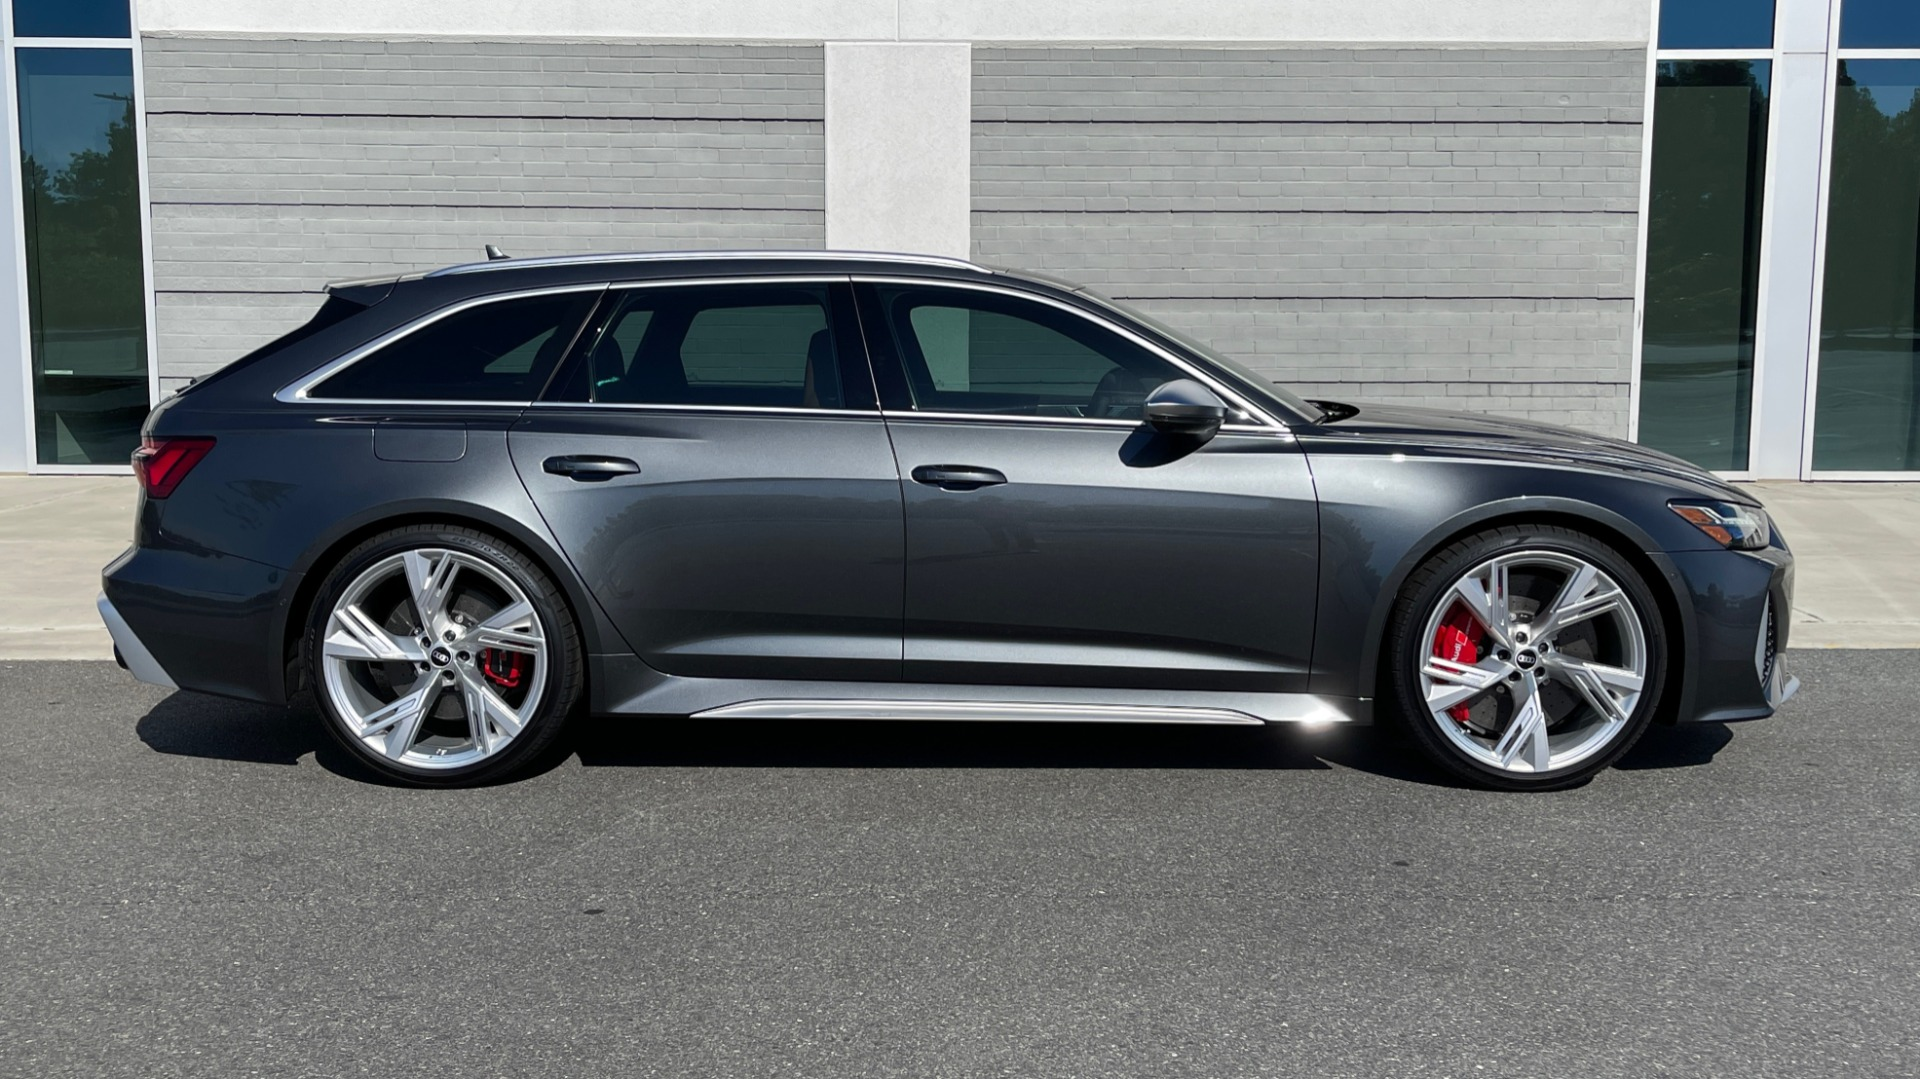 Used 2021 Audi RS 6 AVANT WAGON / EXEC PKG / CARBON OPTIC / B&O SND / DRVR ASST / SPRT EXH for sale Sold at Formula Imports in Charlotte NC 28227 6